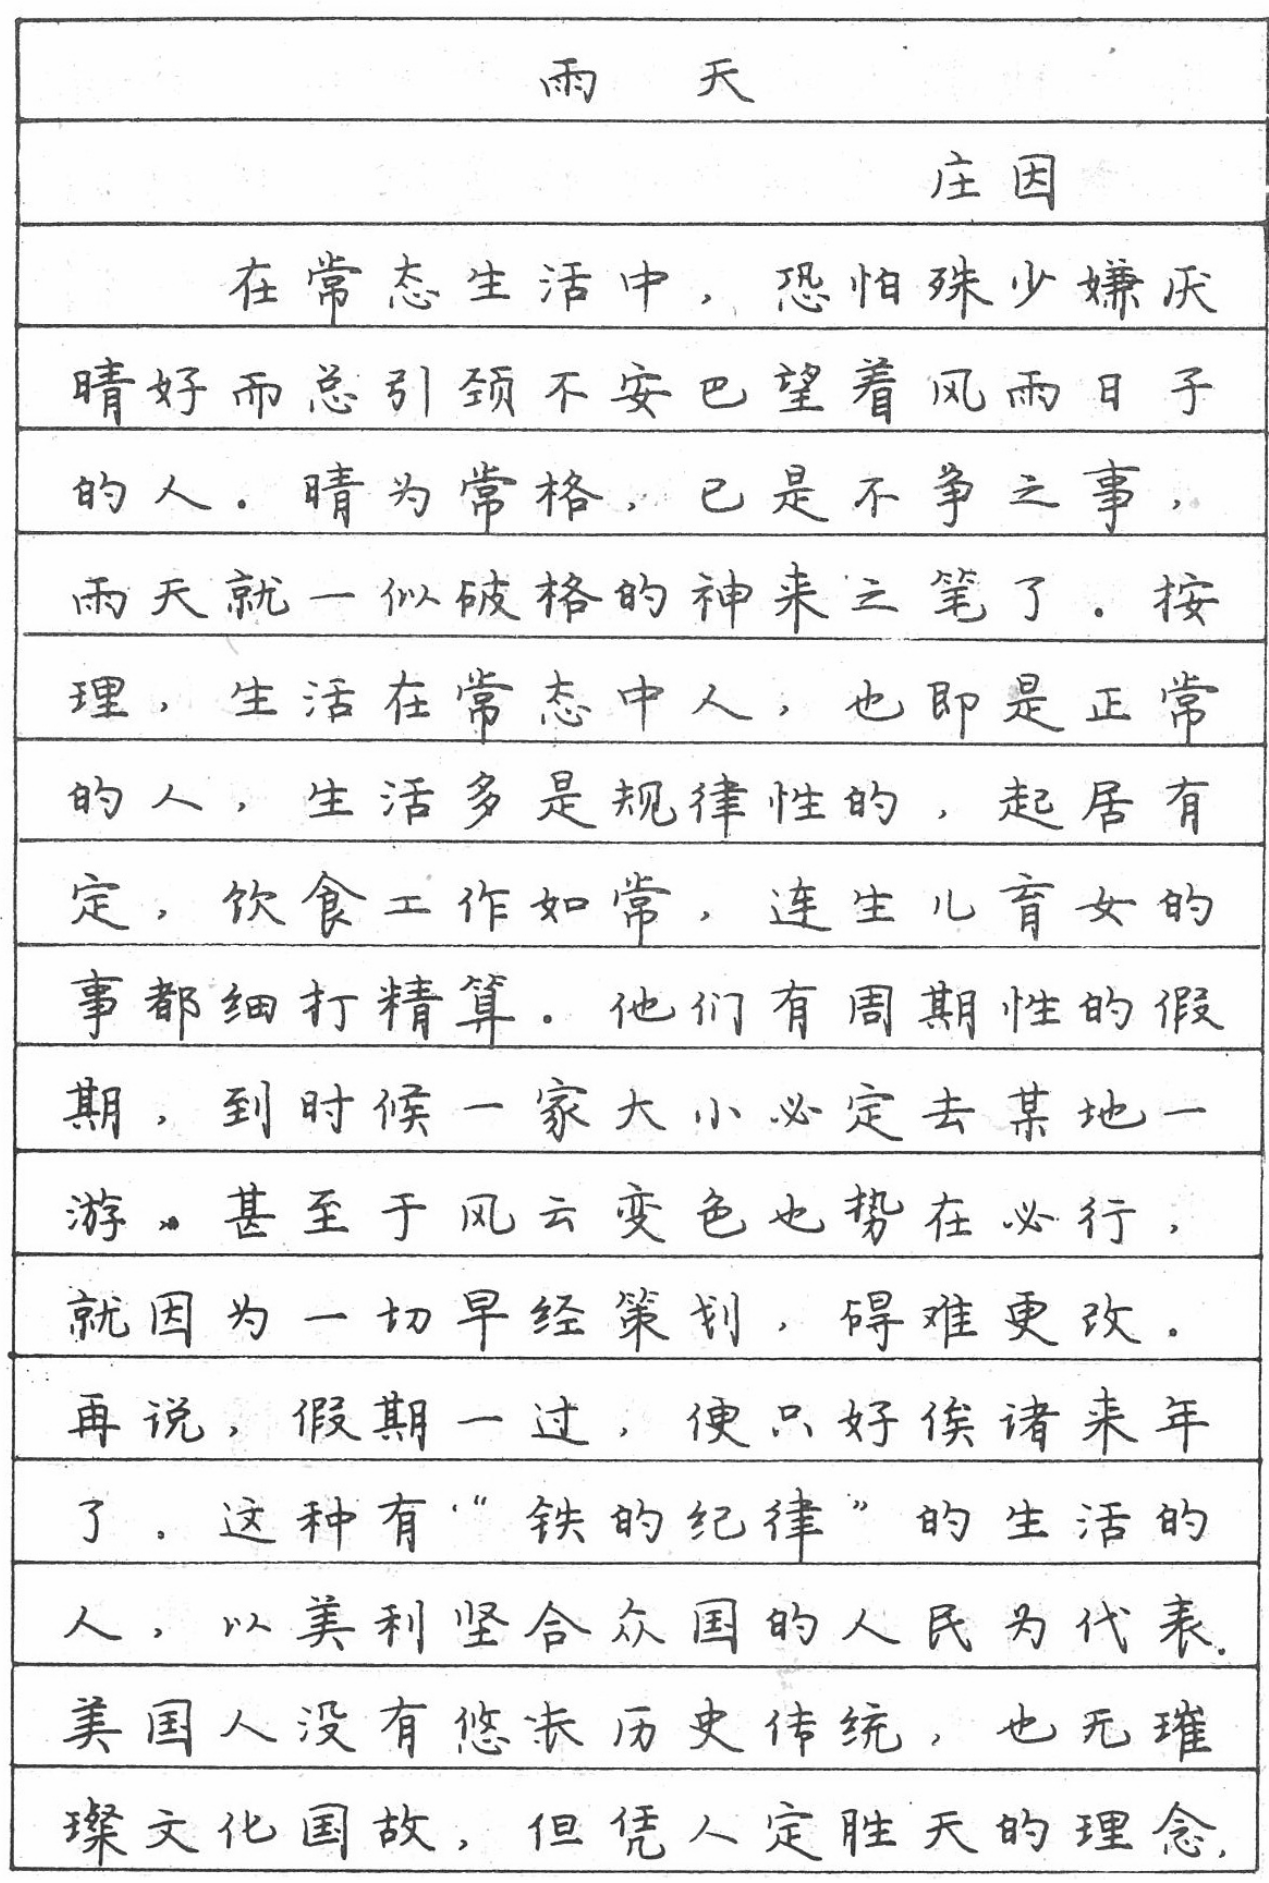 learning to read handwritten chinese hacking chinese. Black Bedroom Furniture Sets. Home Design Ideas